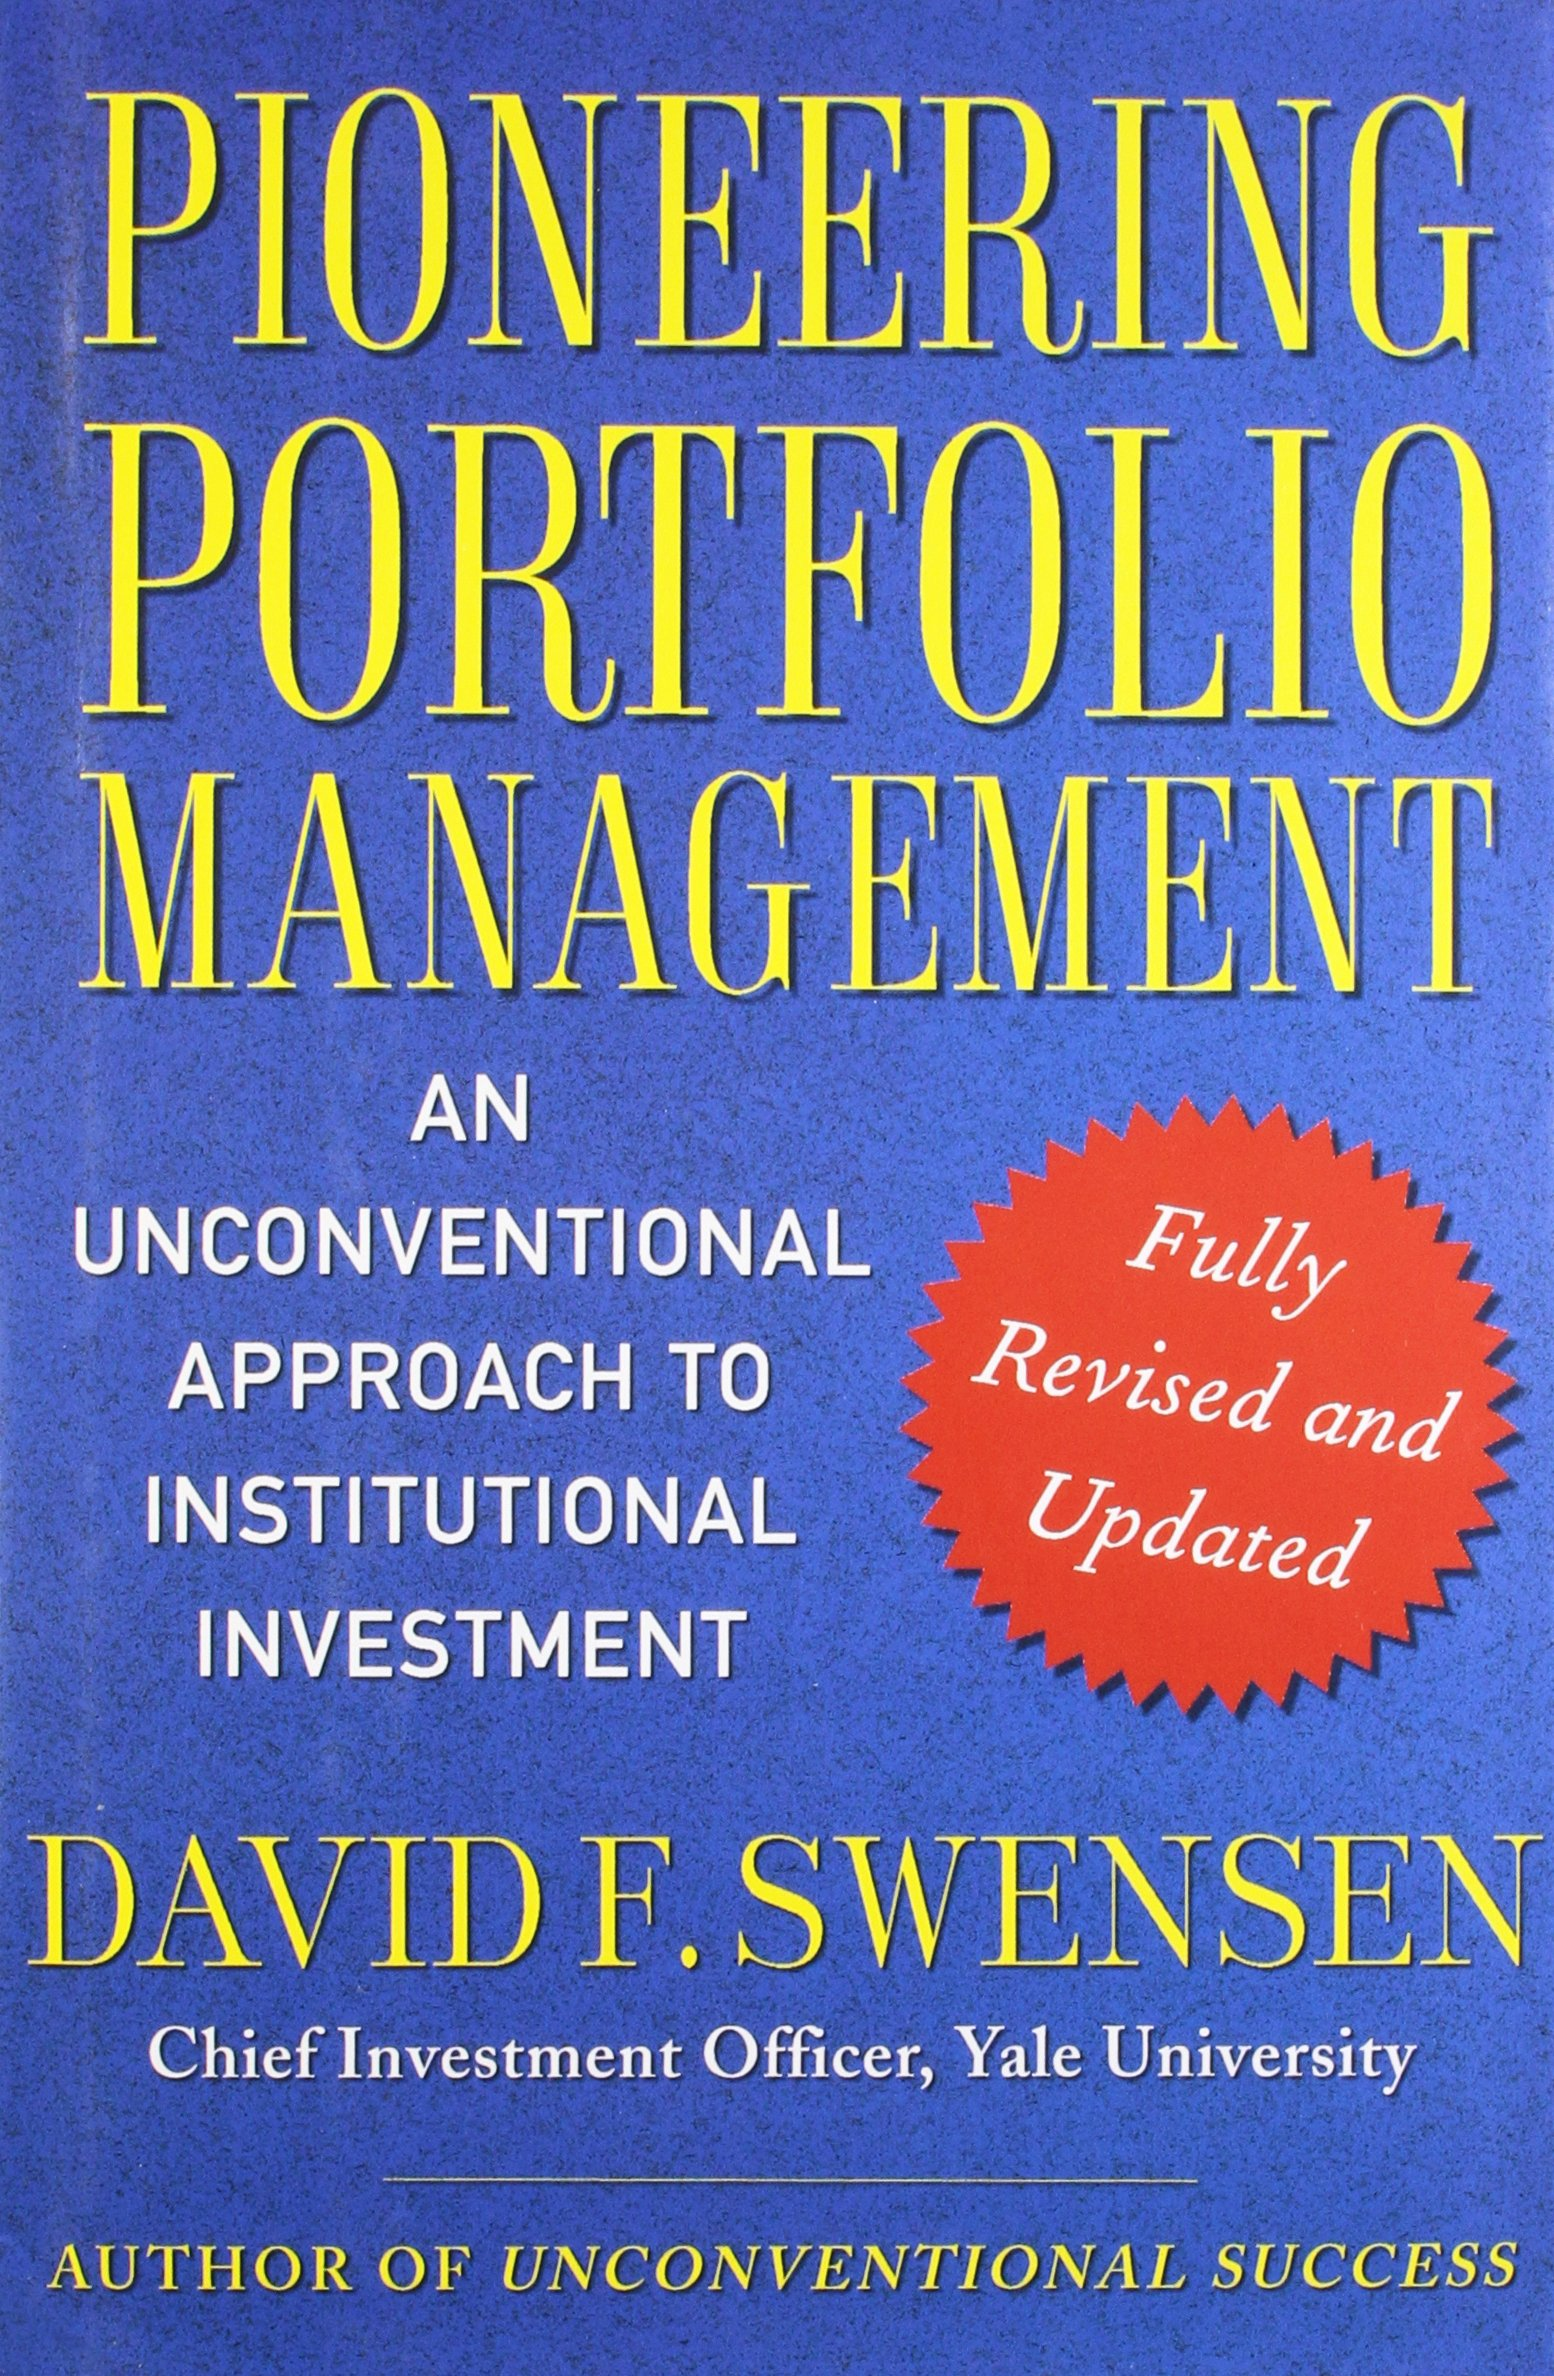 Pioneering Portfolio Management: An Unconventional Approach to Institutional Investment, Fully Revised and Updated by Free Press